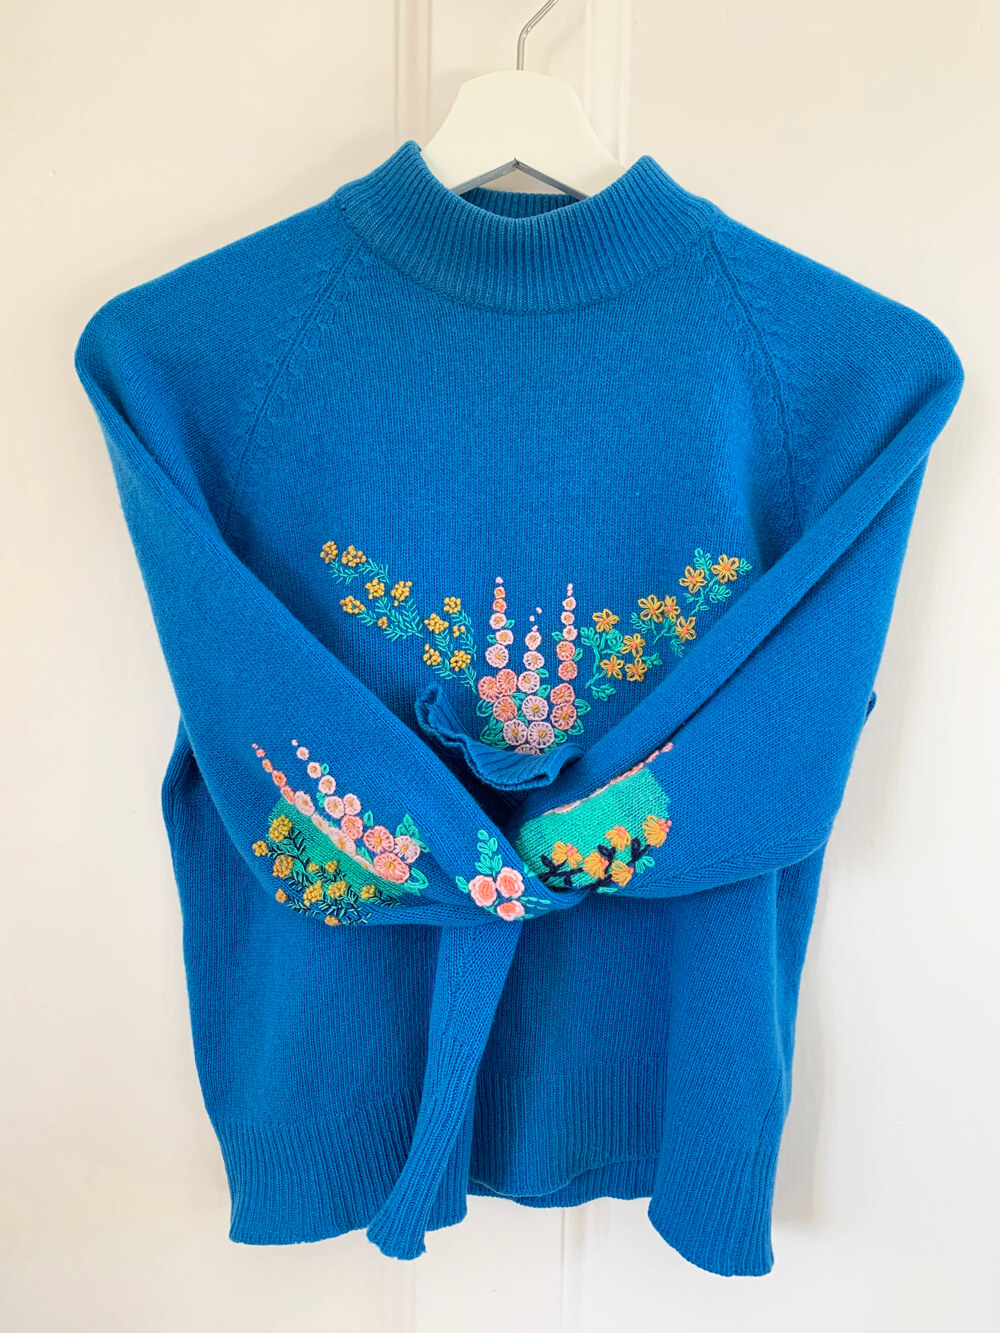 The finished jumper, compete with visible mends!